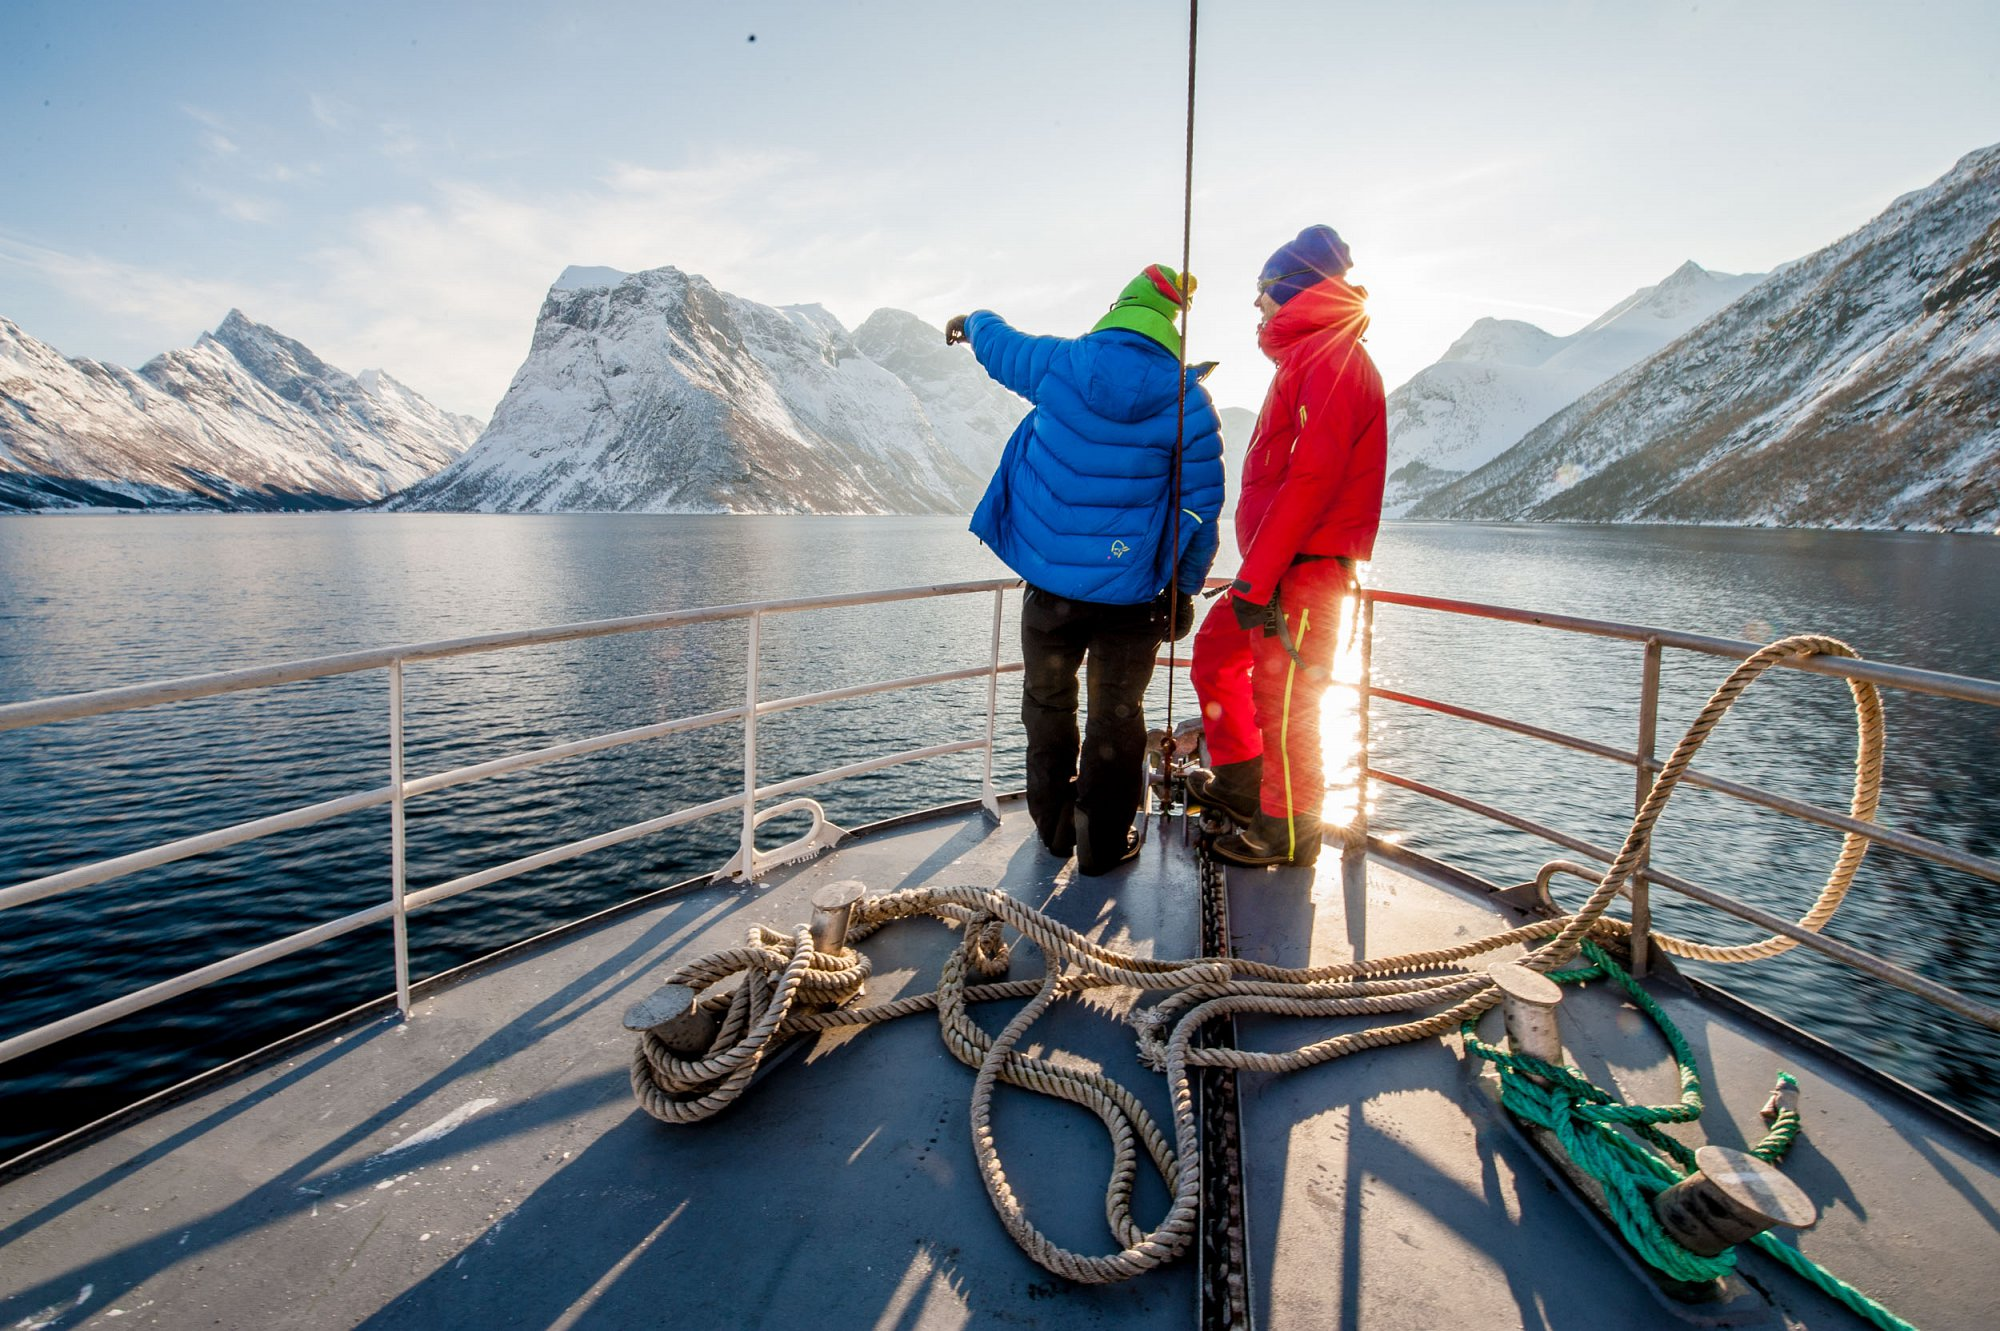 Tor and Eivind enjoying life on the fjord.